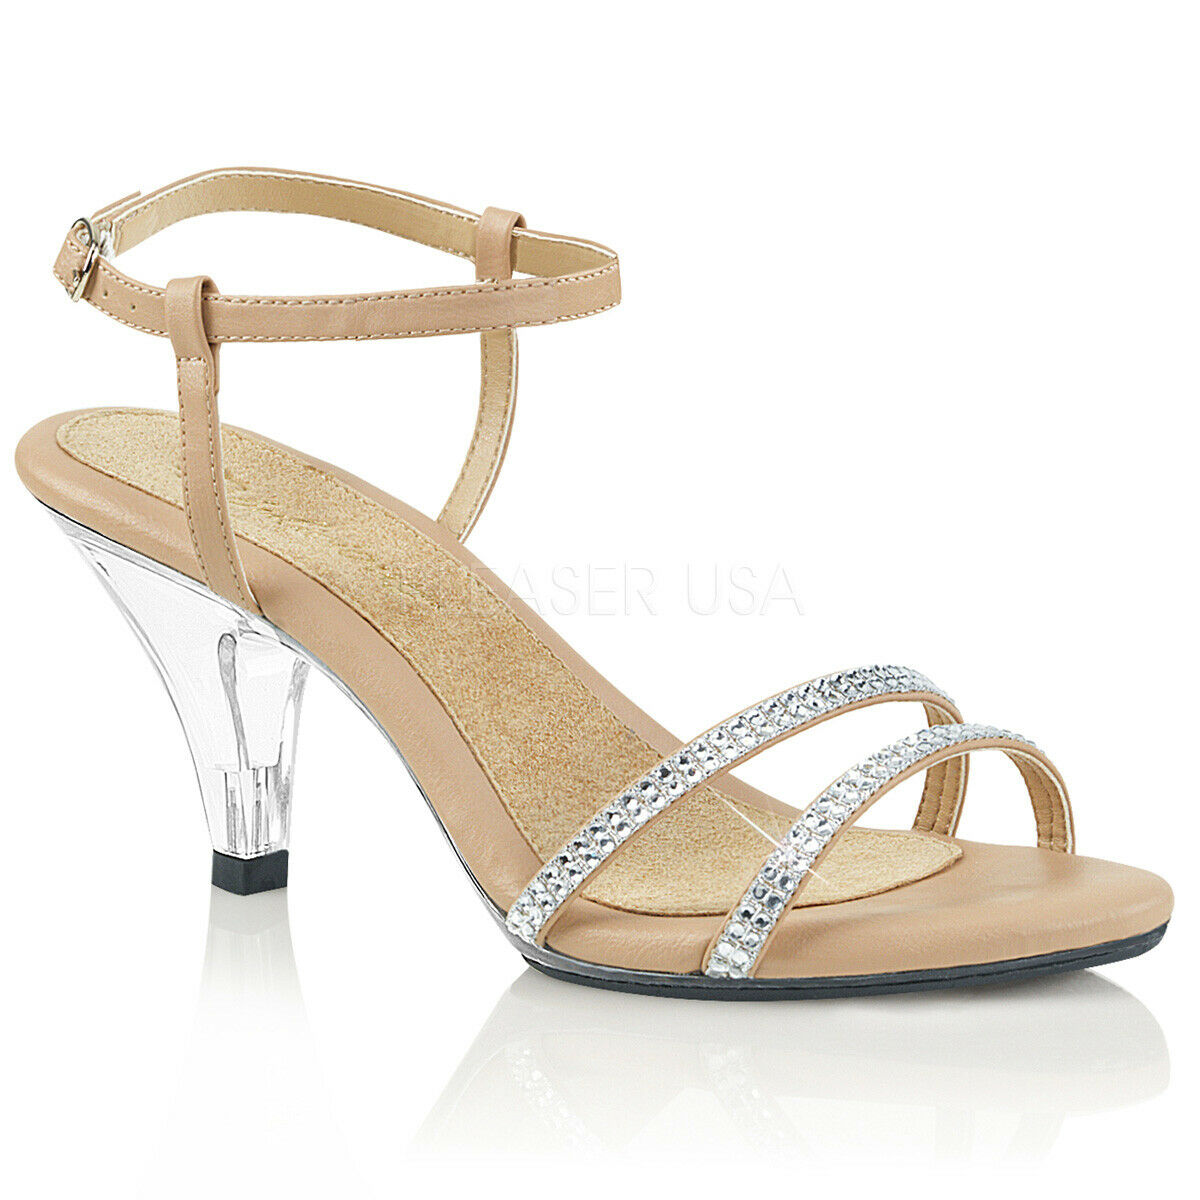 Fabulicious By Pleaser Belle-316 Sandal Nude Slingback Sandal Belle-316 schuhe Rhinestone Vamp 0c0a11